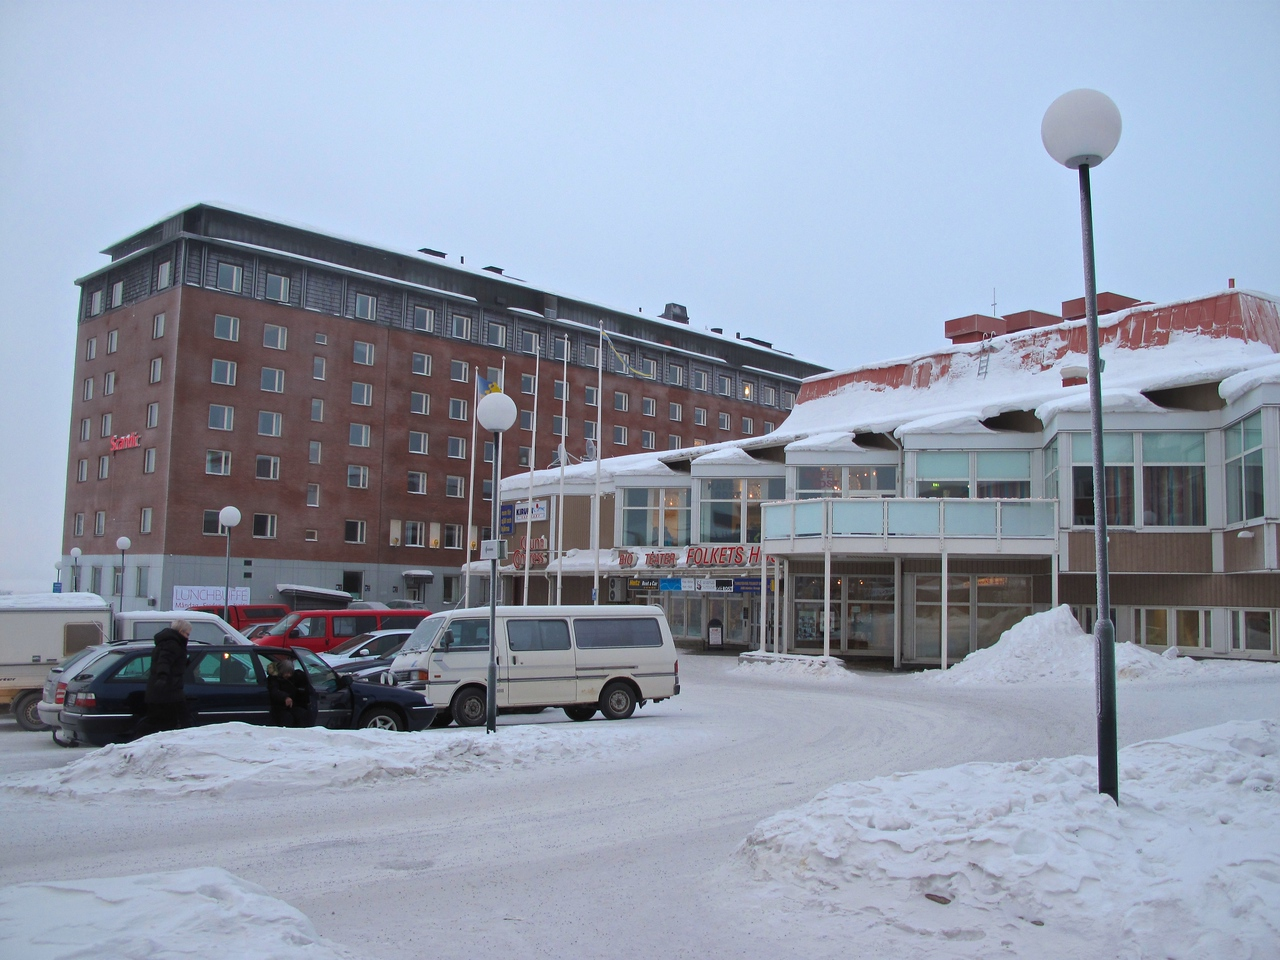 There are very few hotels in Kiruna, so during the popular tourist seasons, the rates are high.  The Scanic is the most upscale hotel in Kiruna and is located on the town's center square.